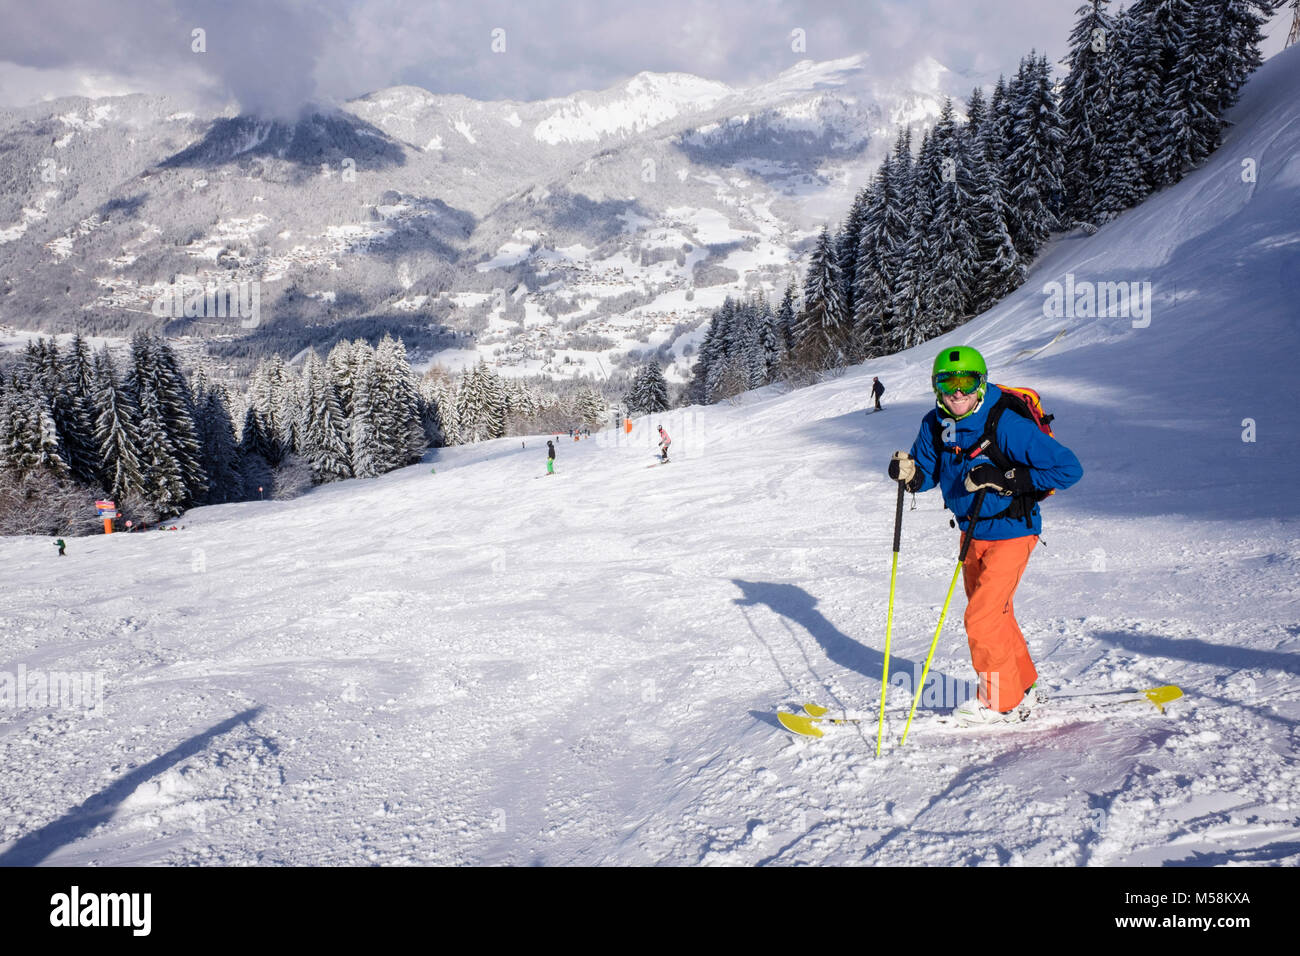 Male skier in French Alps in winter snow skiing on red route ski slope Grand Cret to Vercland, Samoens, Haute Savoie, - Stock Image